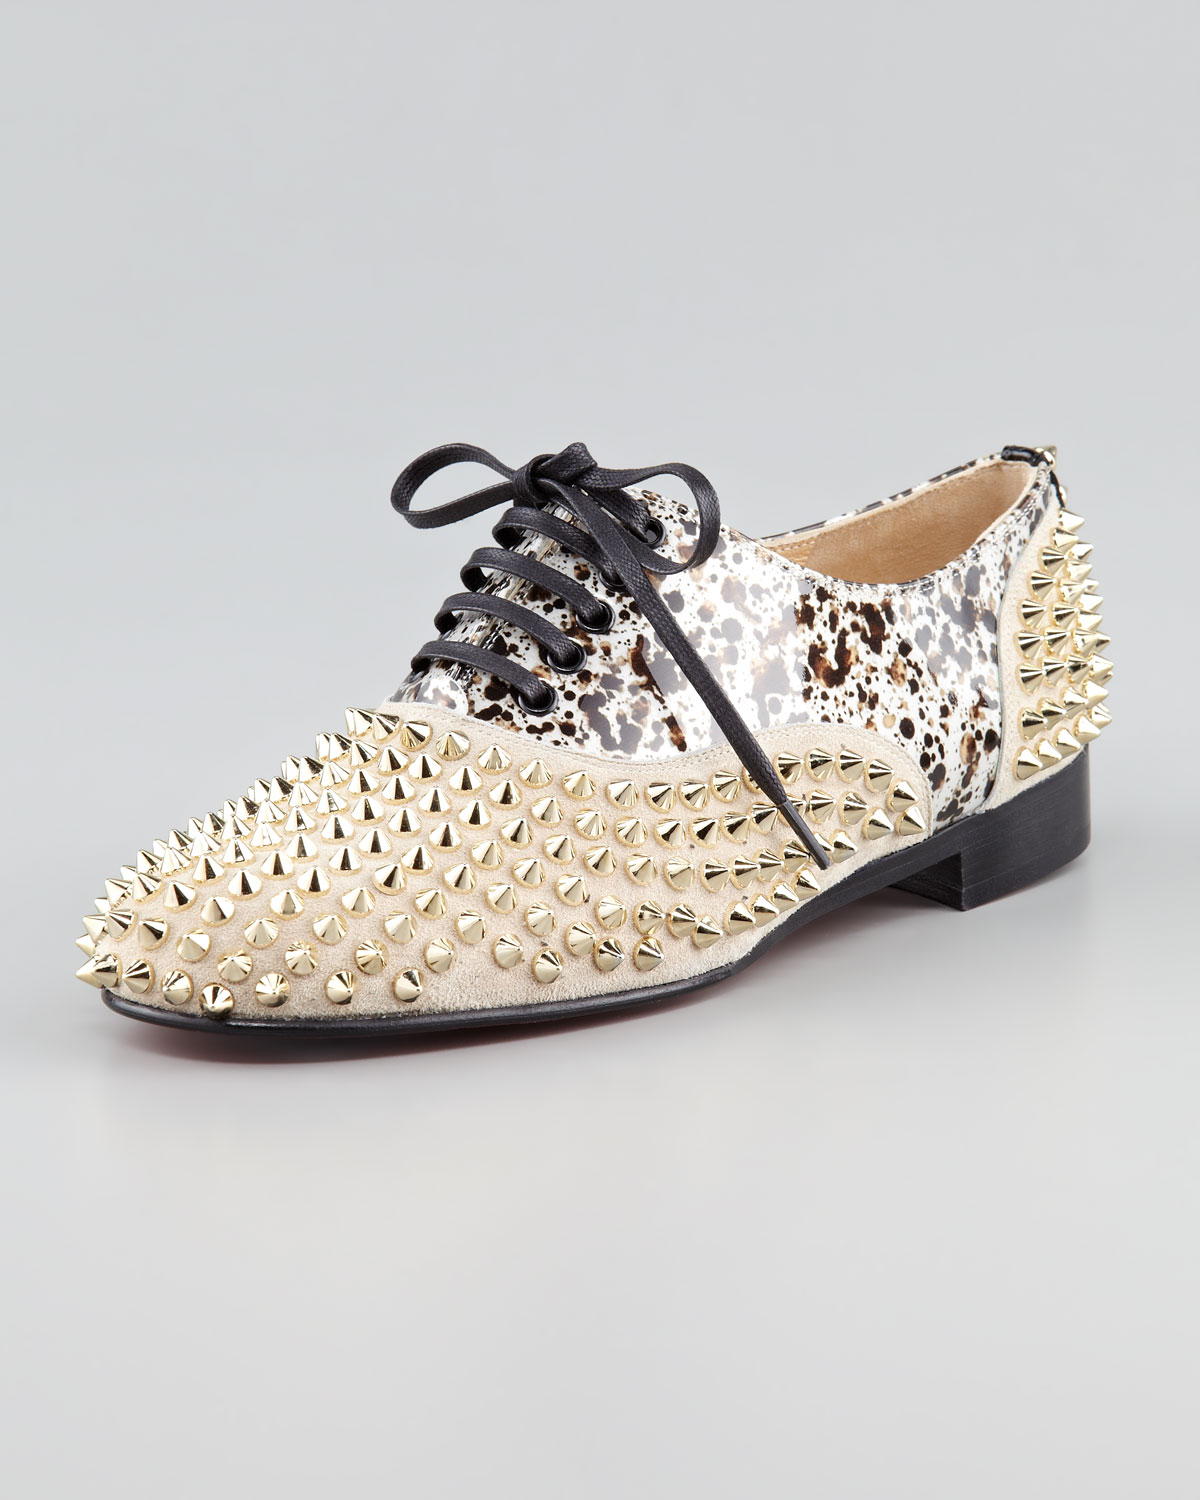 cce0f5d32470 Lyst - Christian Louboutin Freddy Studded Flat Oxford in Metallic